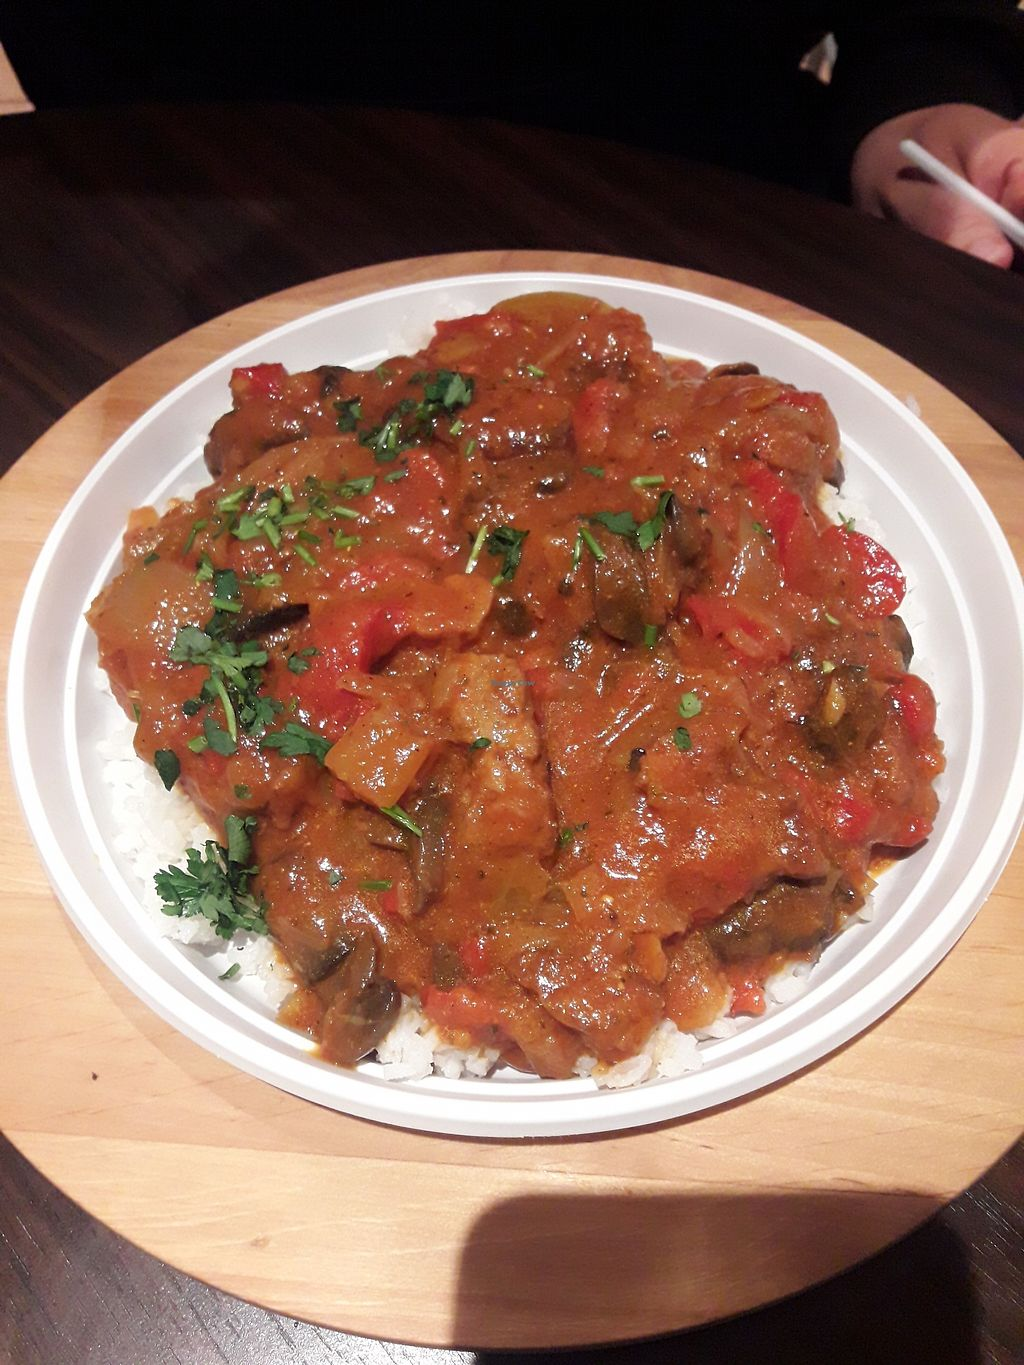 """Photo of Chwirot  by <a href=""""/members/profile/DimitraPontikaki"""">DimitraPontikaki</a> <br/>Stroganov with rice! <br/> March 24, 2018  - <a href='/contact/abuse/image/100005/375580'>Report</a>"""